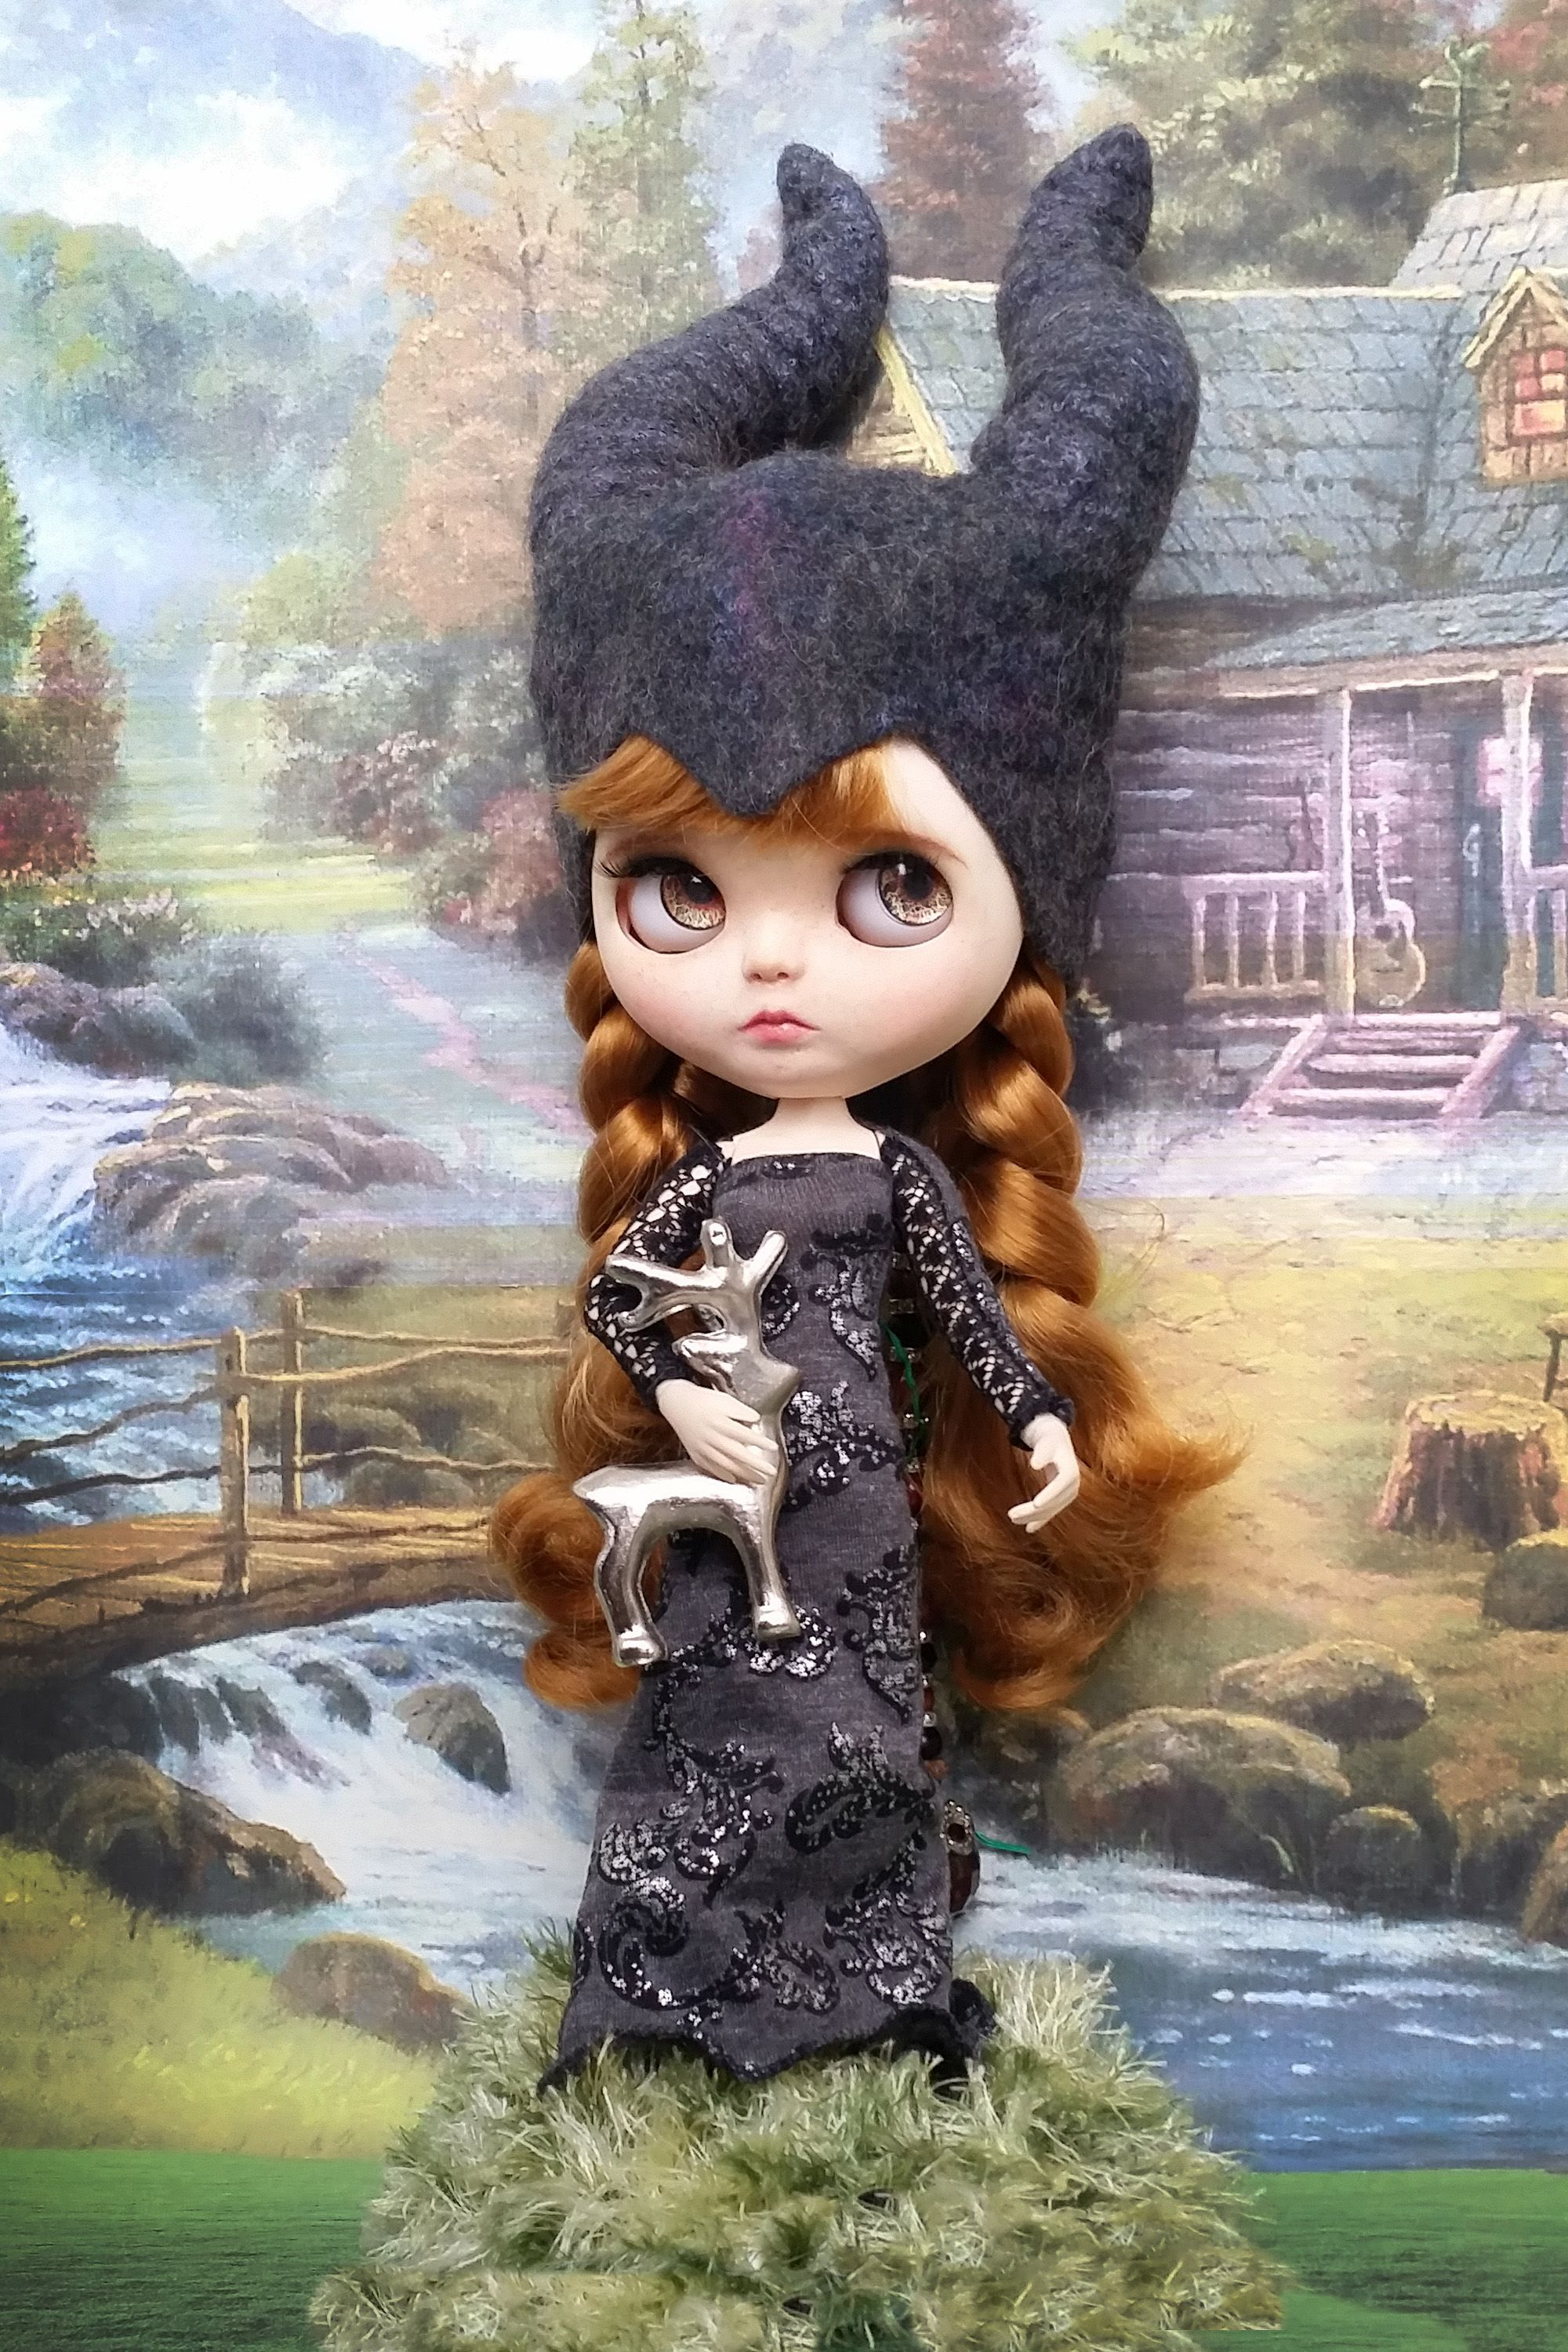 malefisenta headpiece for doll #queenshats Dark Queen hat for Blythe, Pullip dolls and 28 cm head dolls. Evil queen beanie with horns for Blythe.  #malefisent blythe hat #ooak blythe #horned headpiece for doll #blythe outfit #queenshats